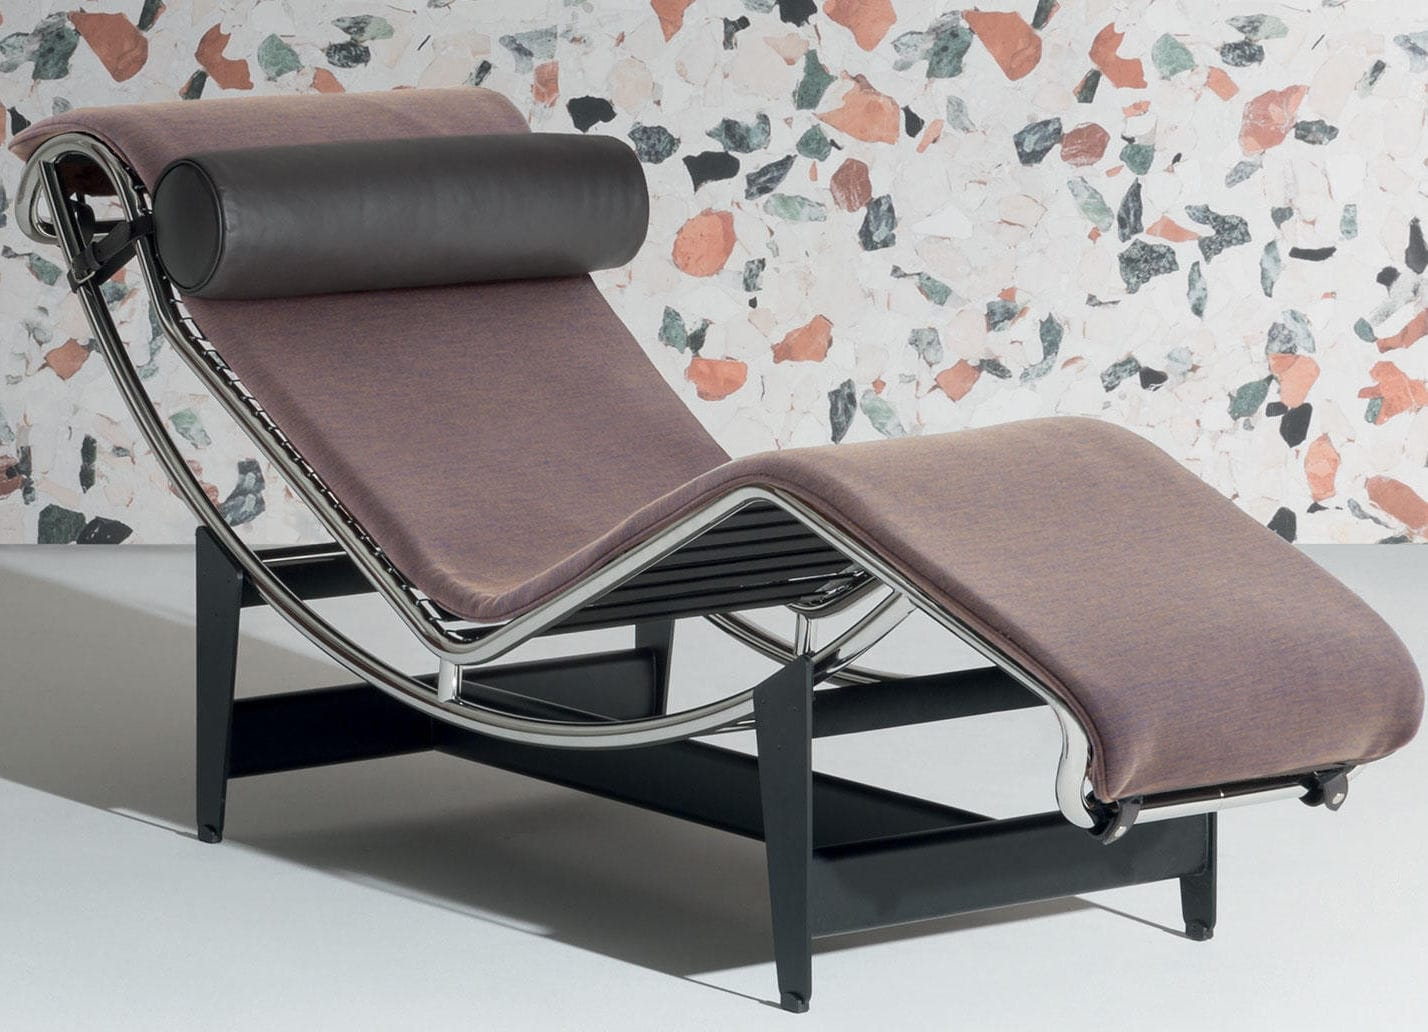 Contemporary Chaise Longue Fabric Leather By Le Corbusier